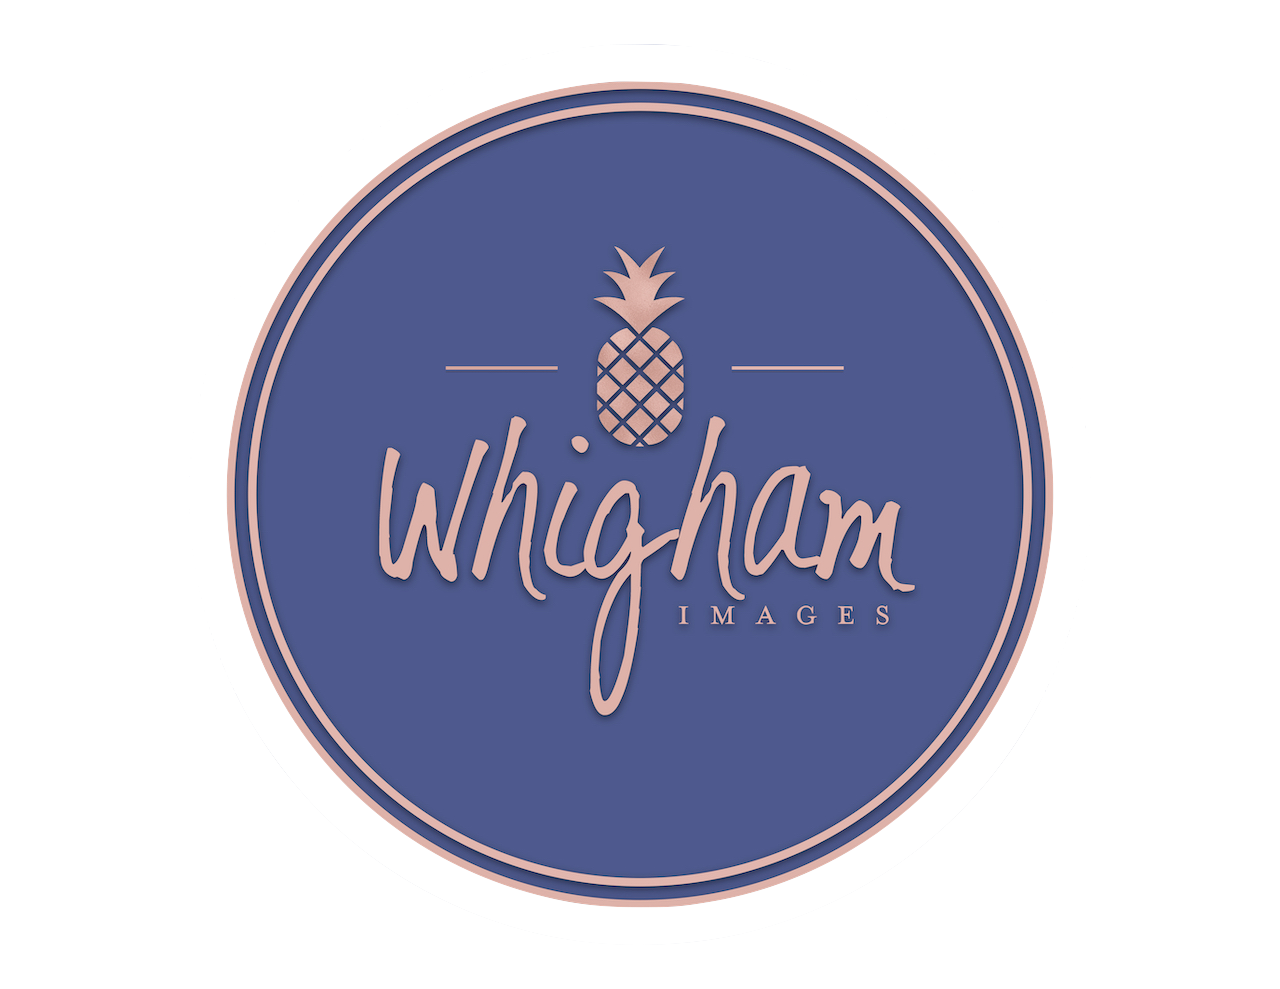 Whigham Images